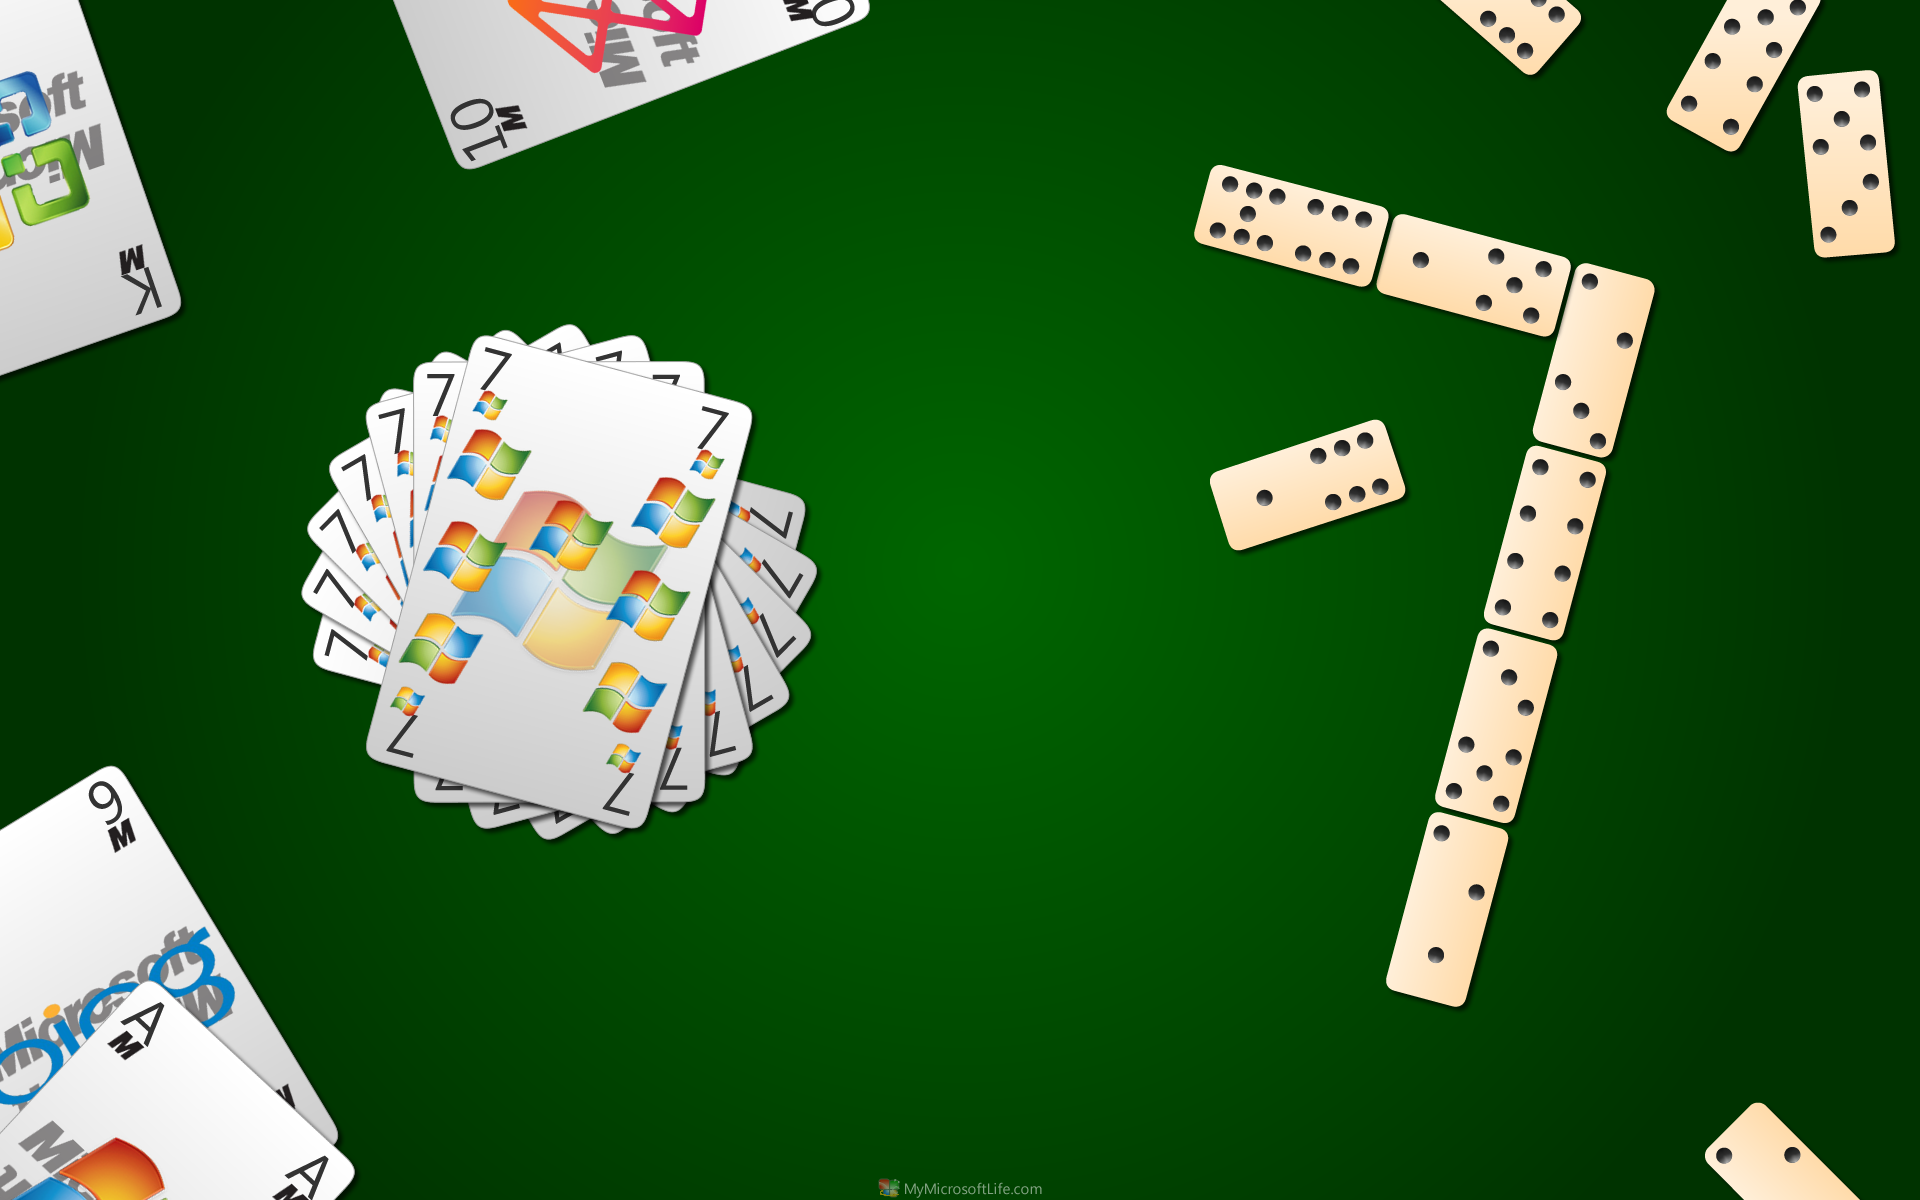 Playing Cards 19201200 Wallpaper 1635281 1920x1200